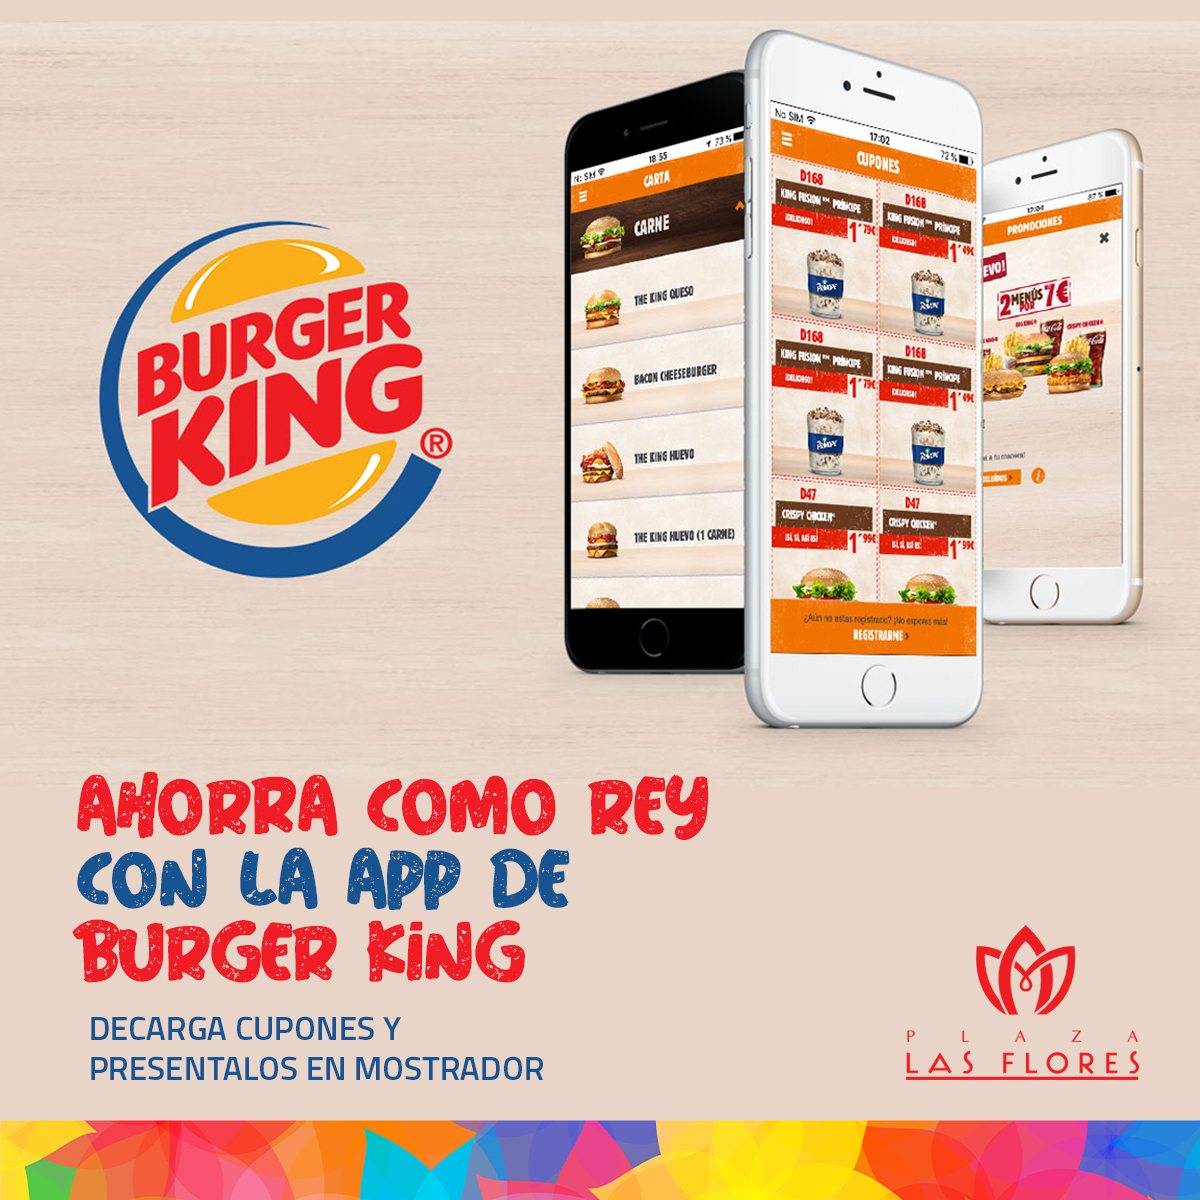 LasFlores-Ofertas-BurgerKing copy